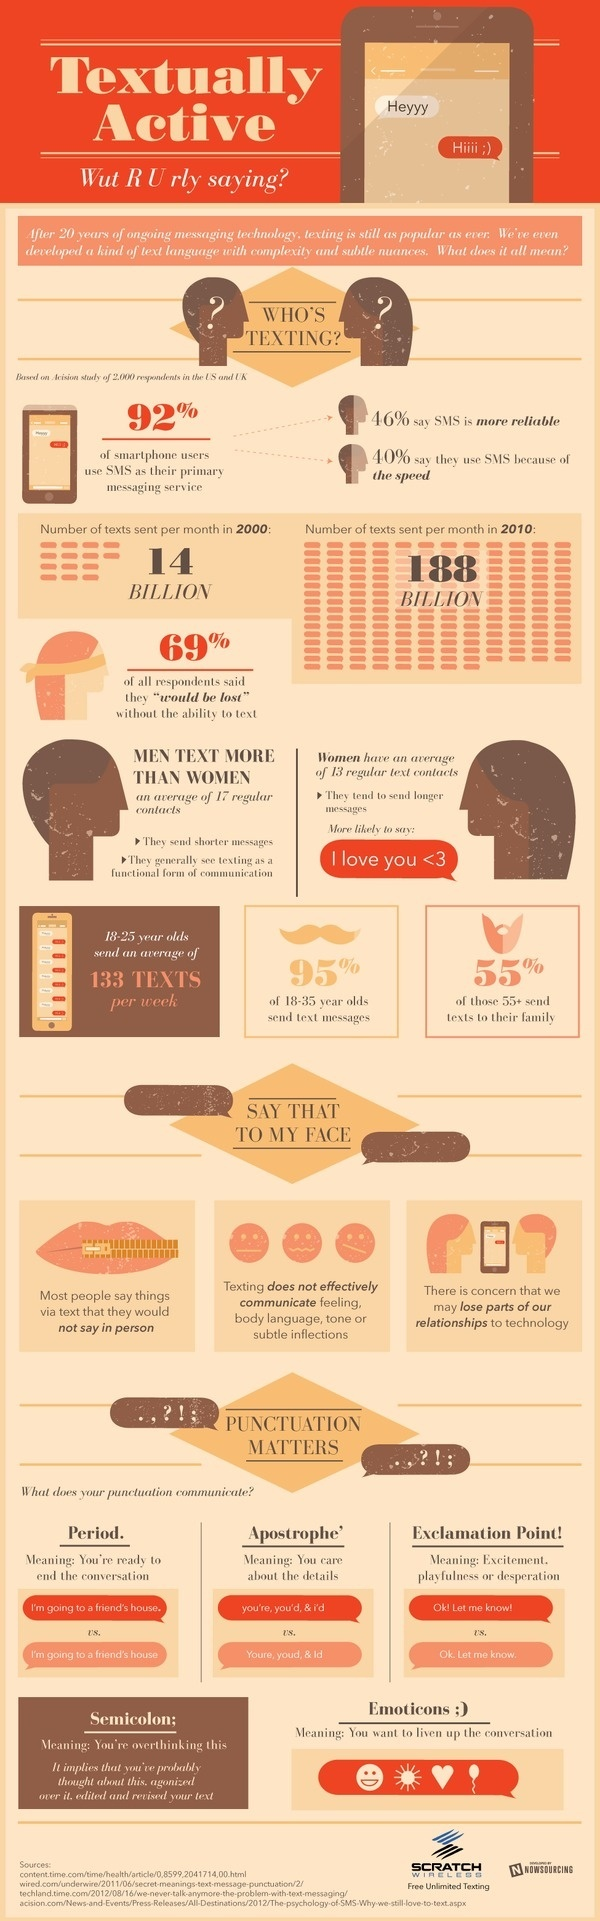 infographic on texting and text messaging #communication #texting